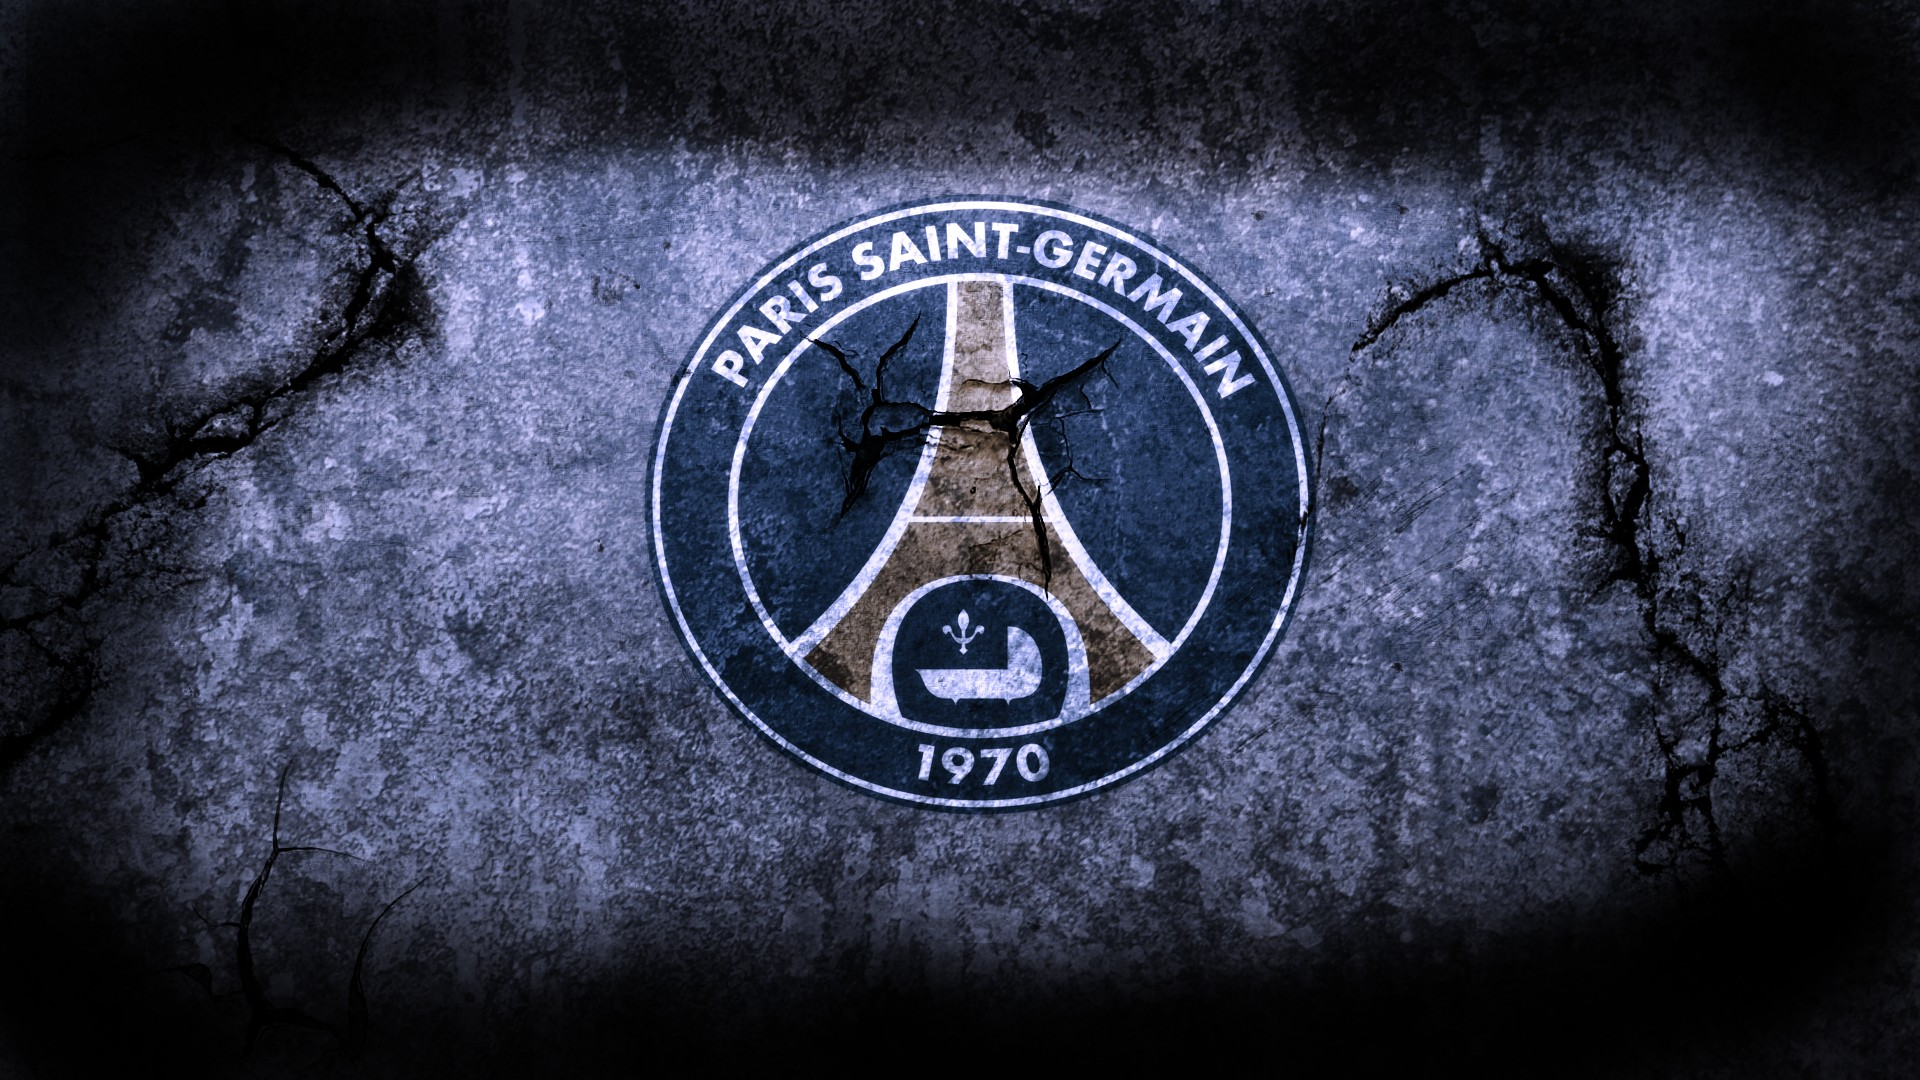 Paris Saint-Germain Symbol Wallpaper